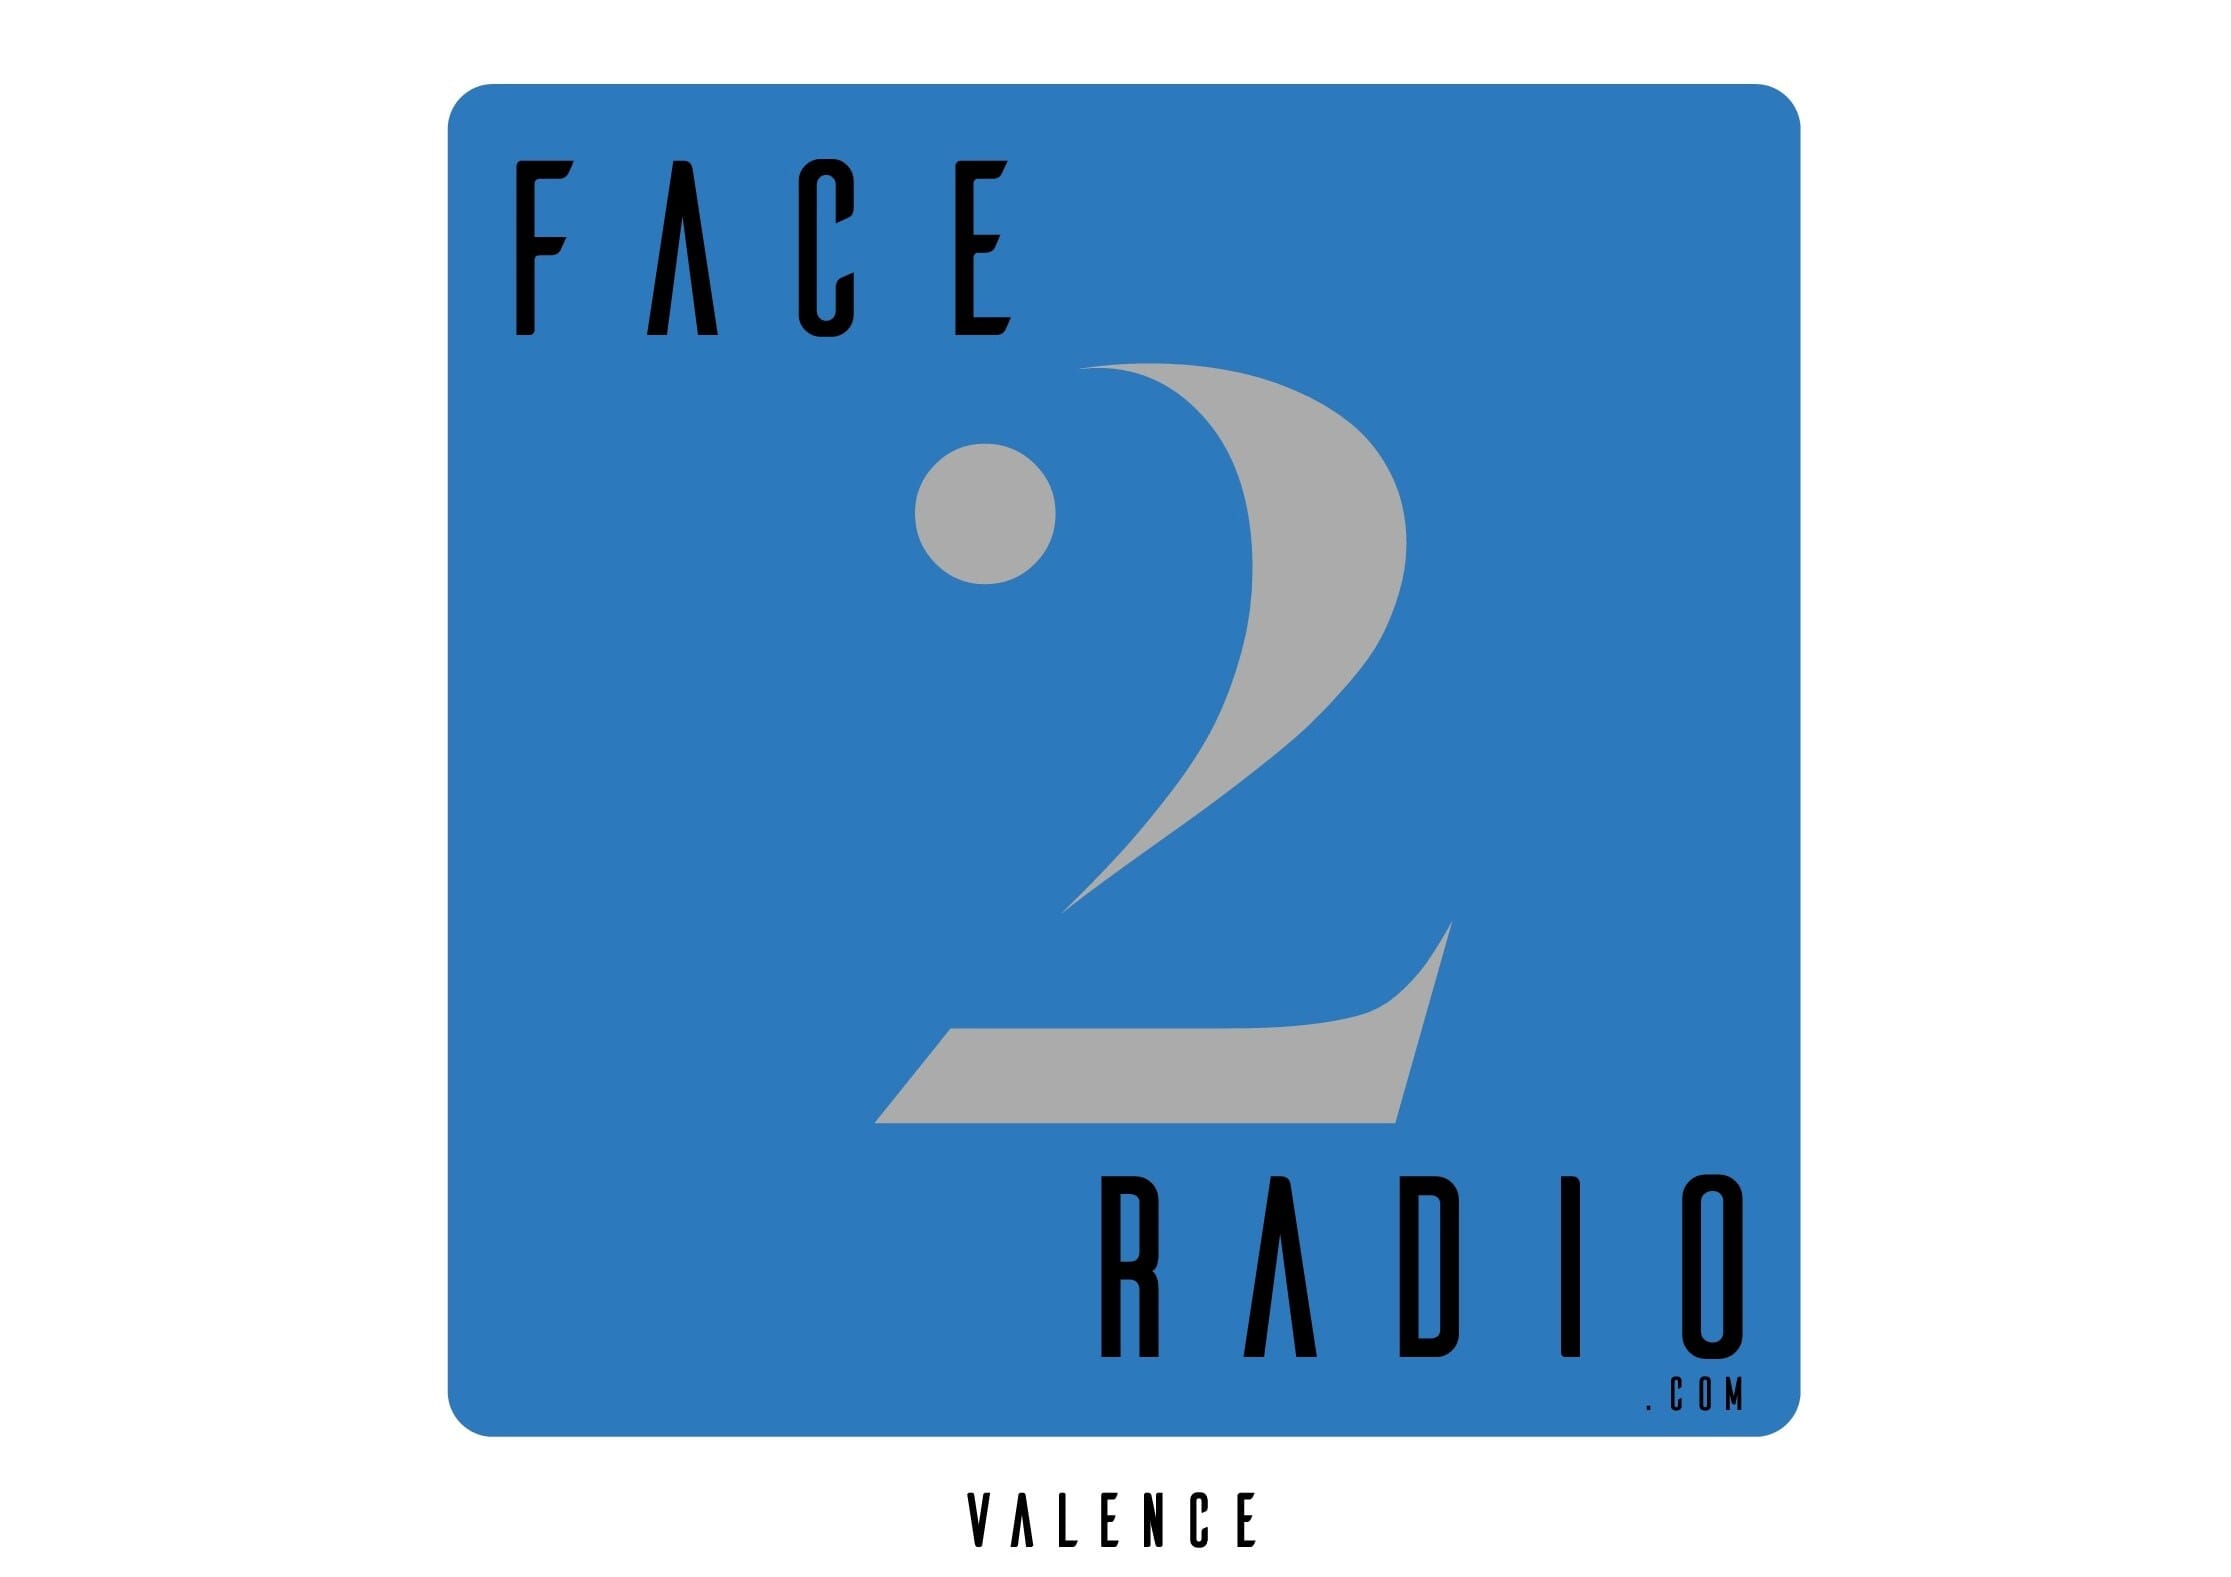 Listen to Face 2 Radio